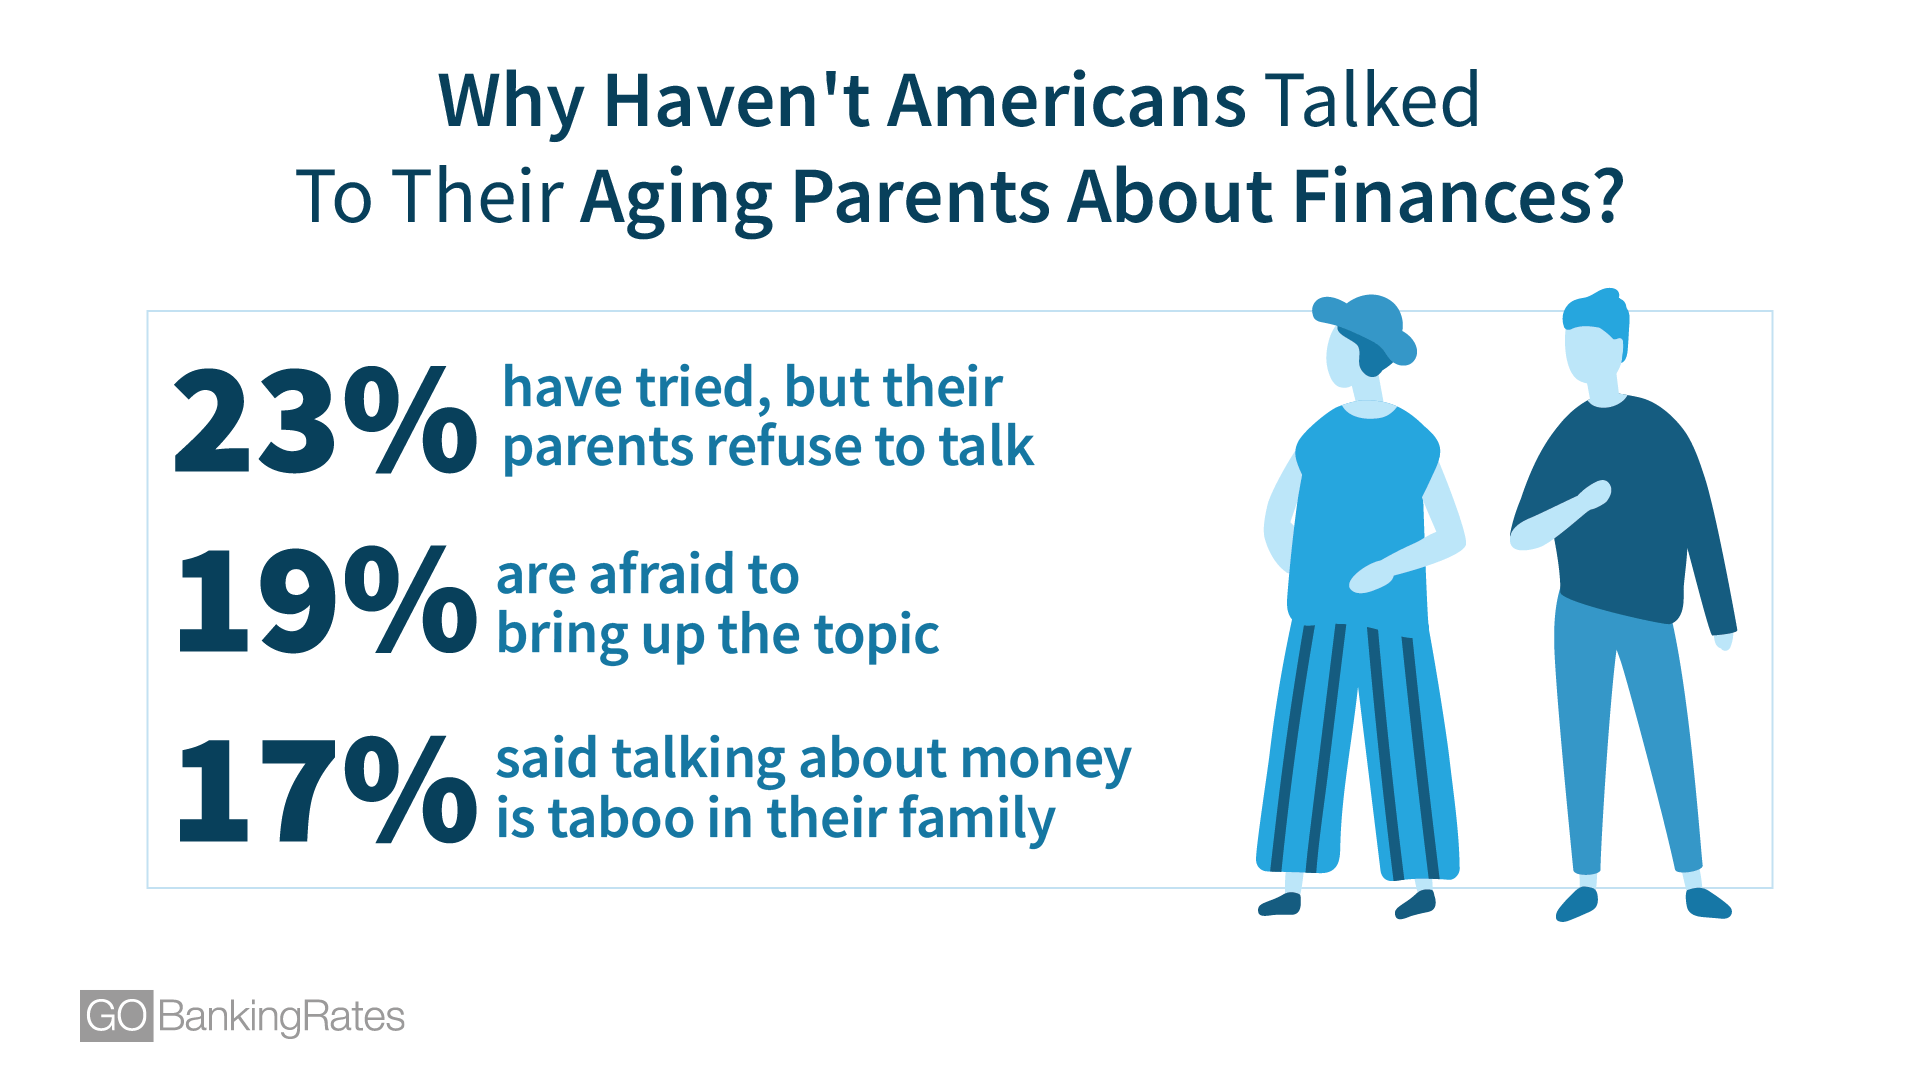 Why Haven't Americans Talked To Their Aging Parents About Finances?